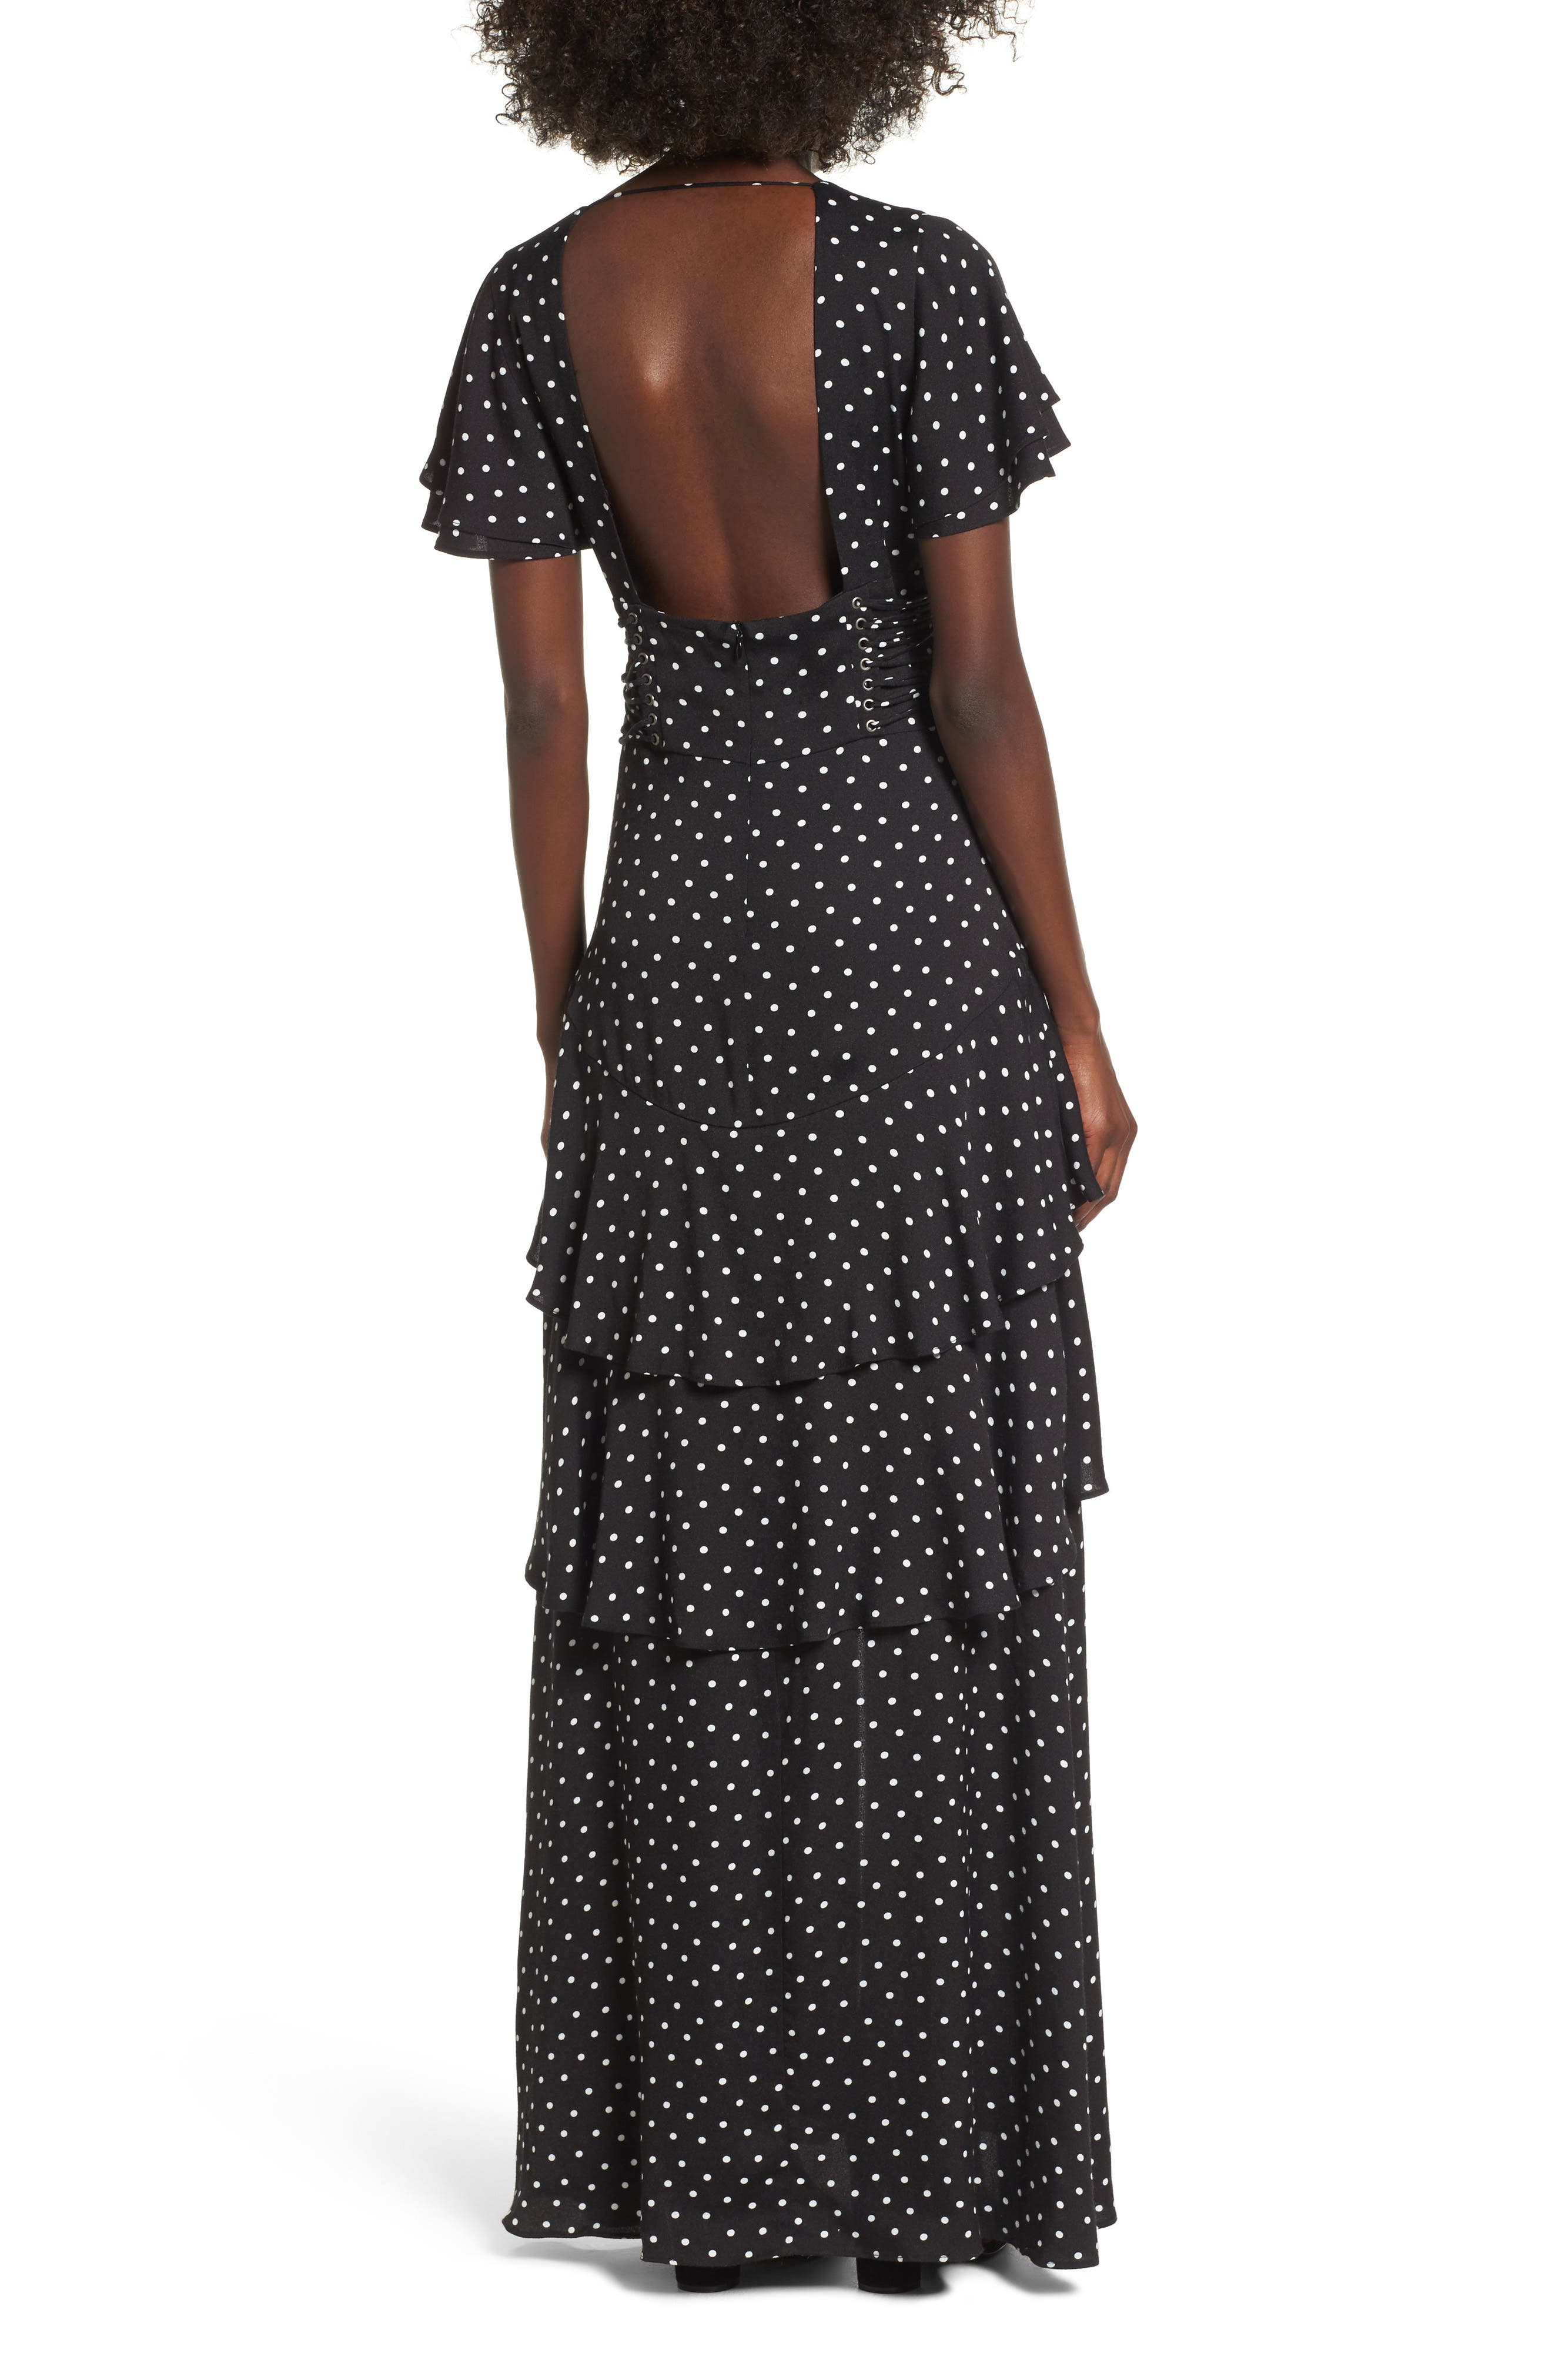 Micah Corset Maxi Dress,                             Alternate thumbnail 2, color,                             Noir Polka Dot